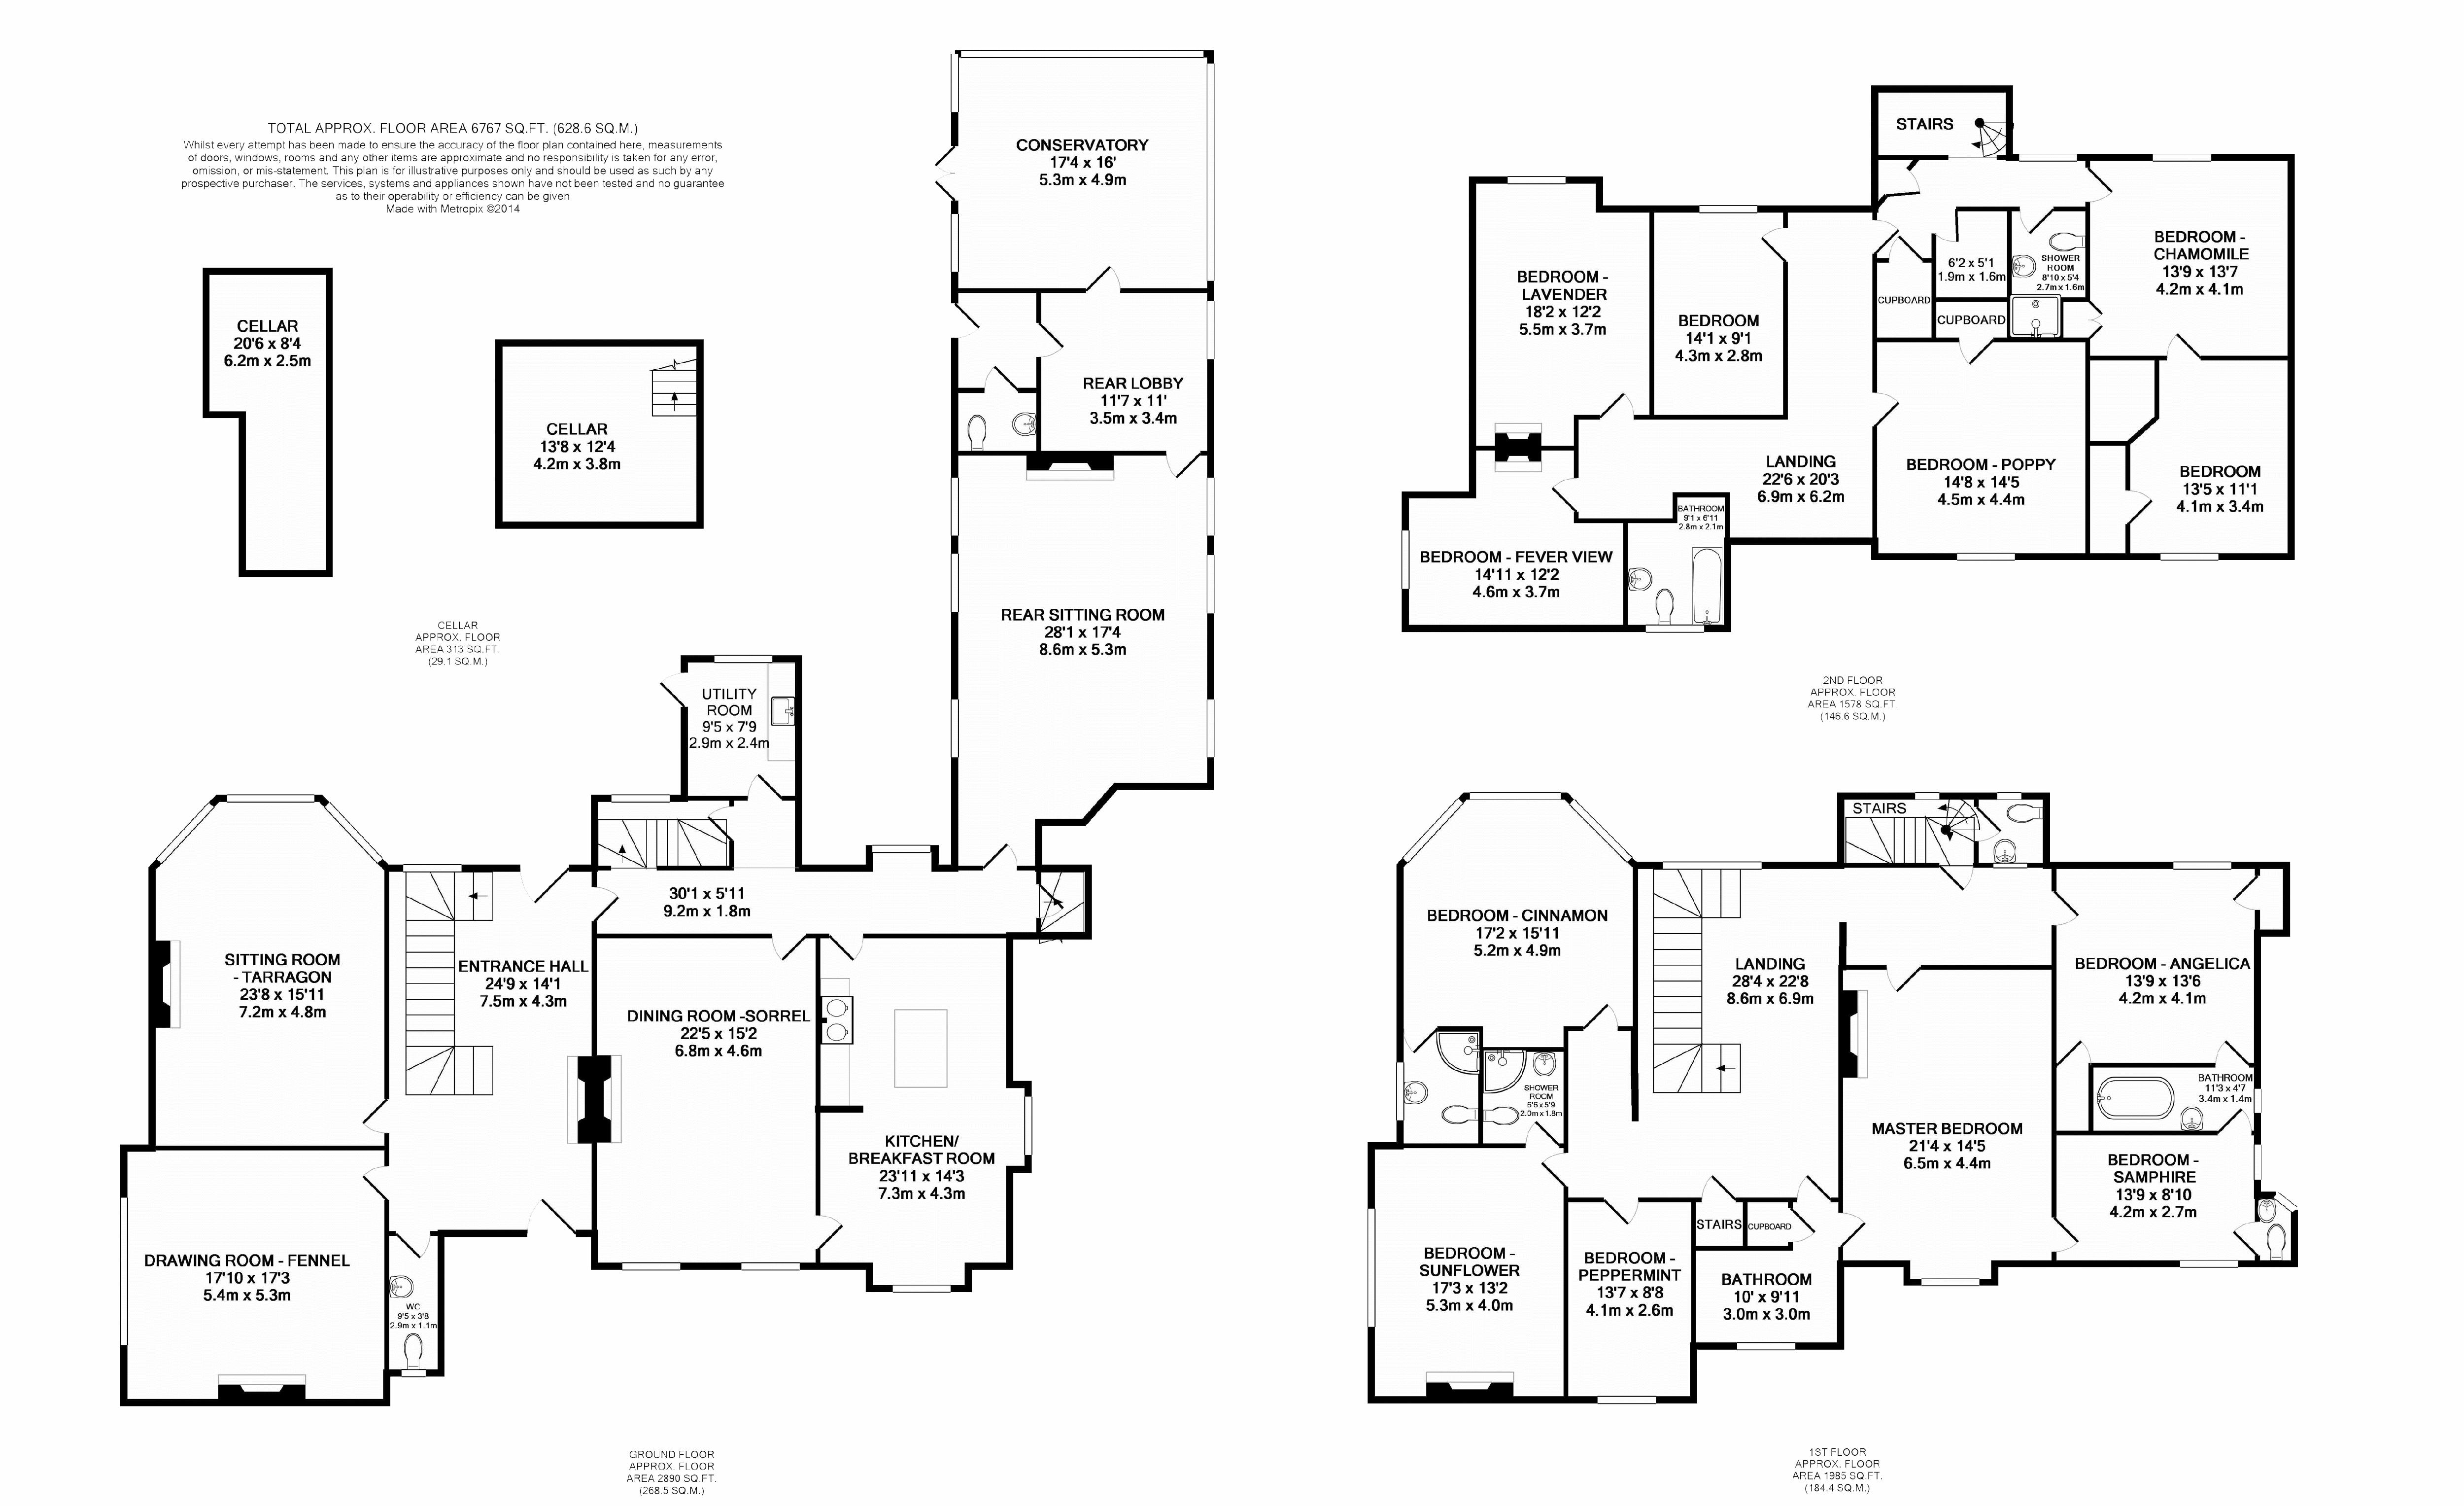 welle manor hall, new road, upwell, norfolk, pe14 9ab - printable